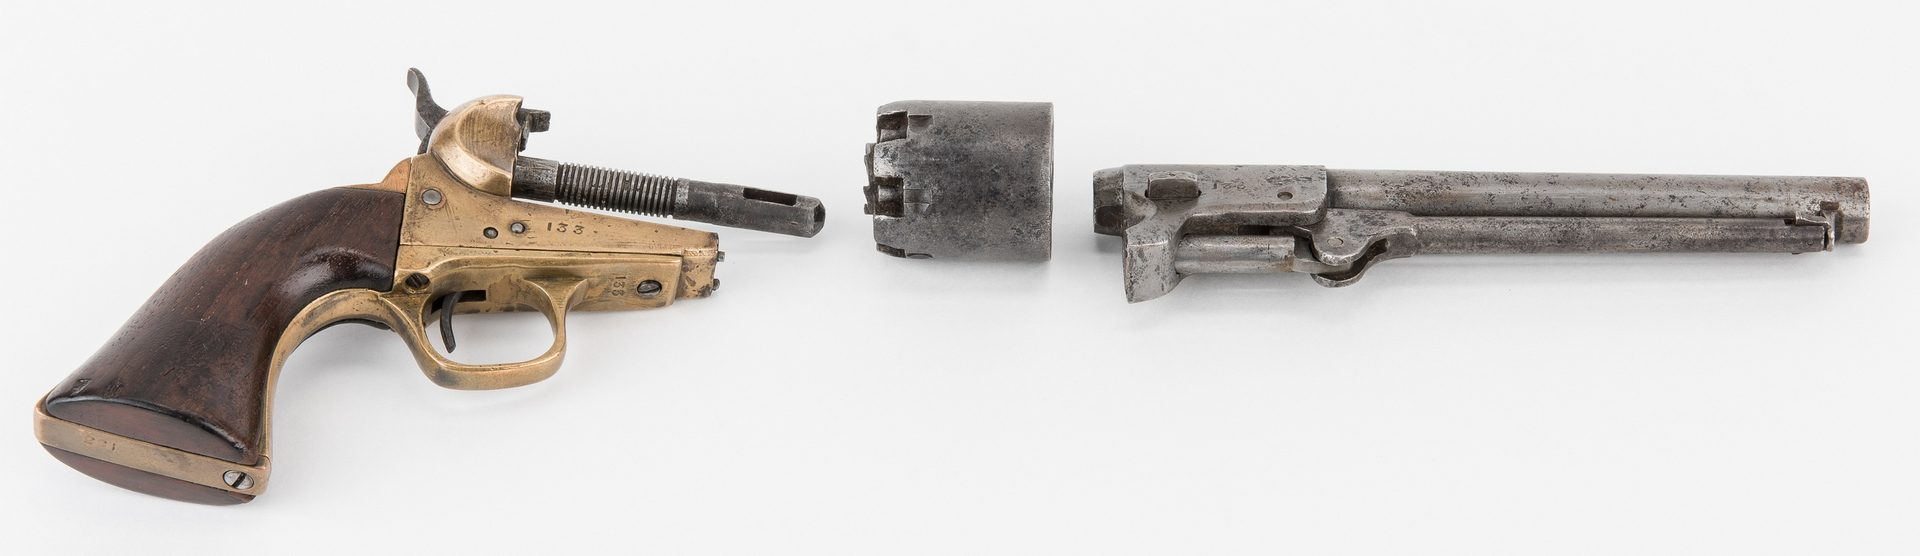 Lot 296: Confederate 1st Model Griswold revolver, SN 133